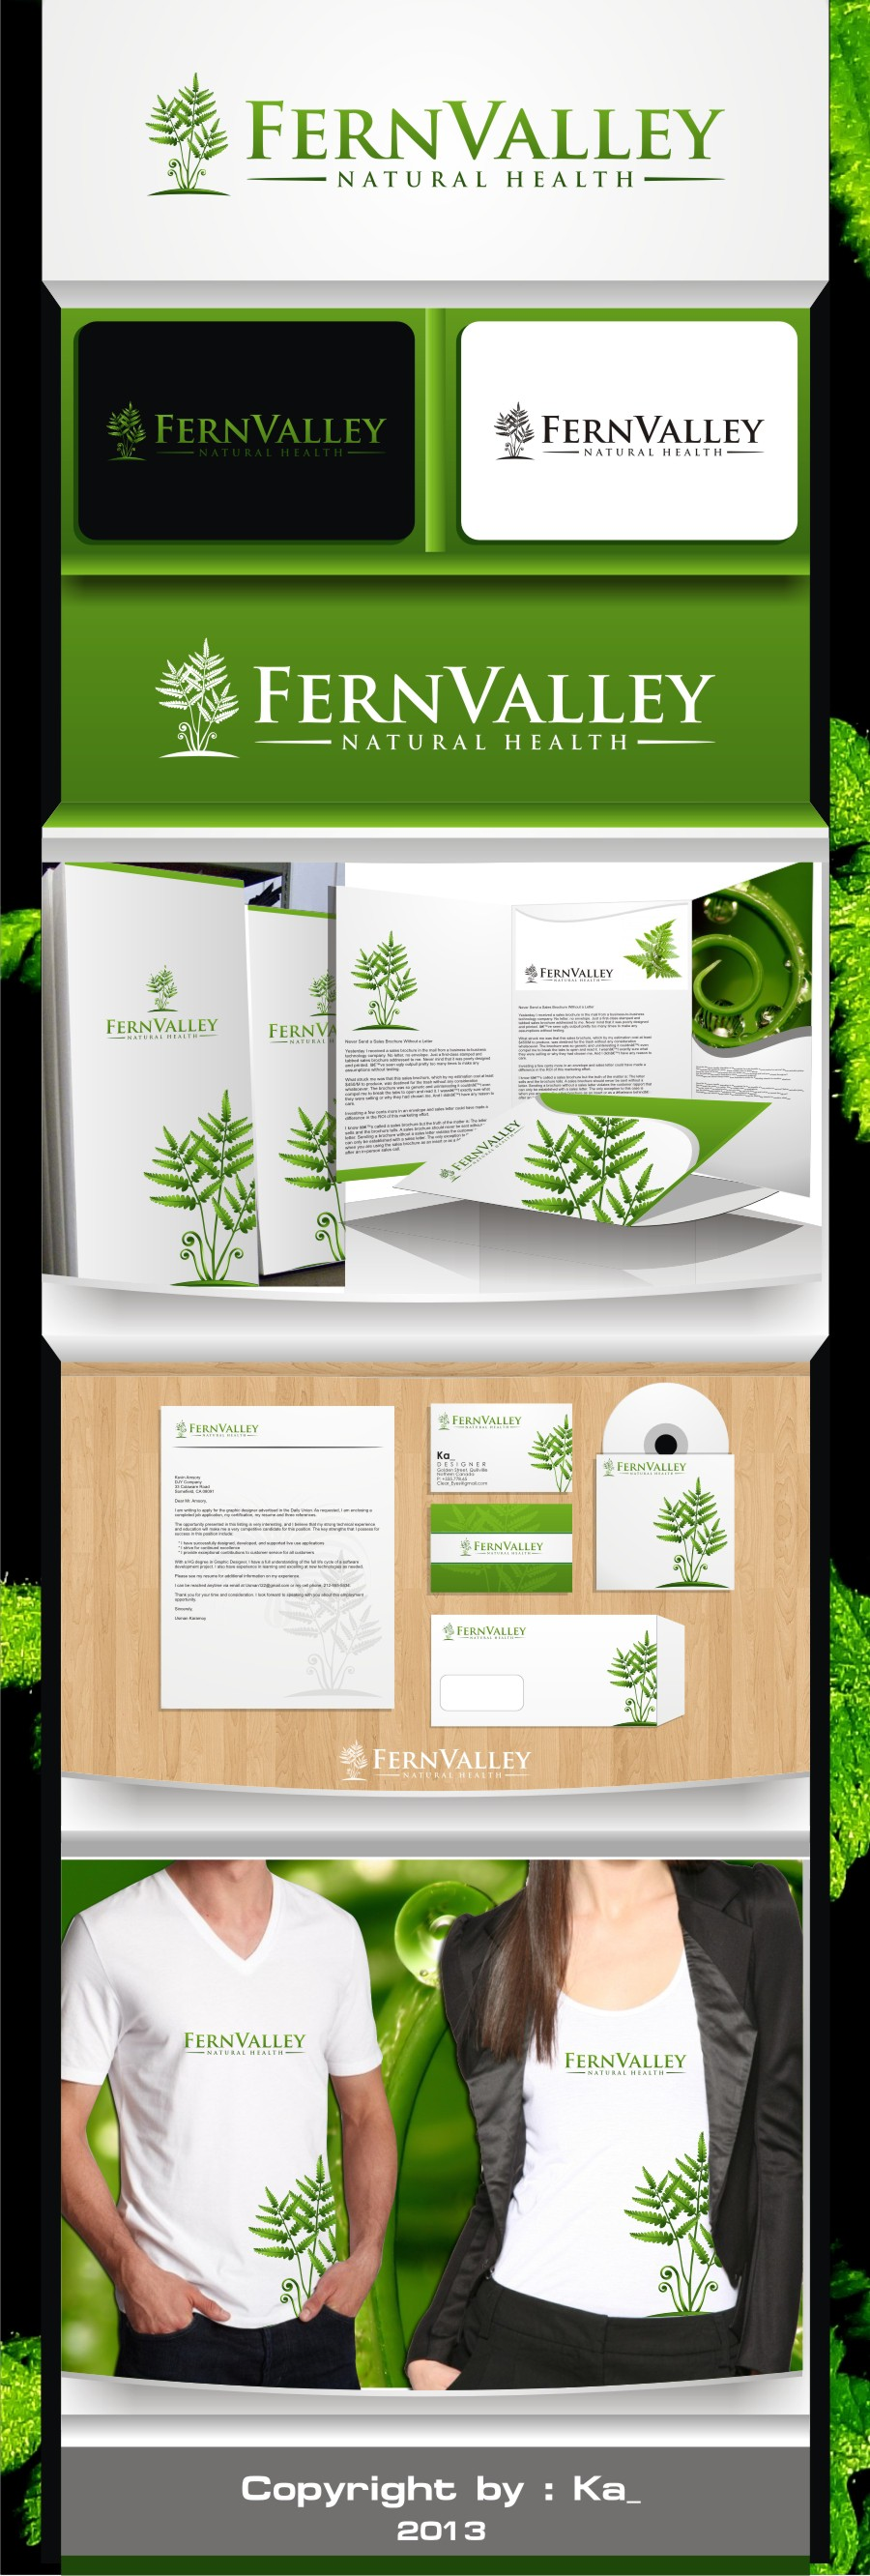 Create the next logo for Fern Valley Natural Health